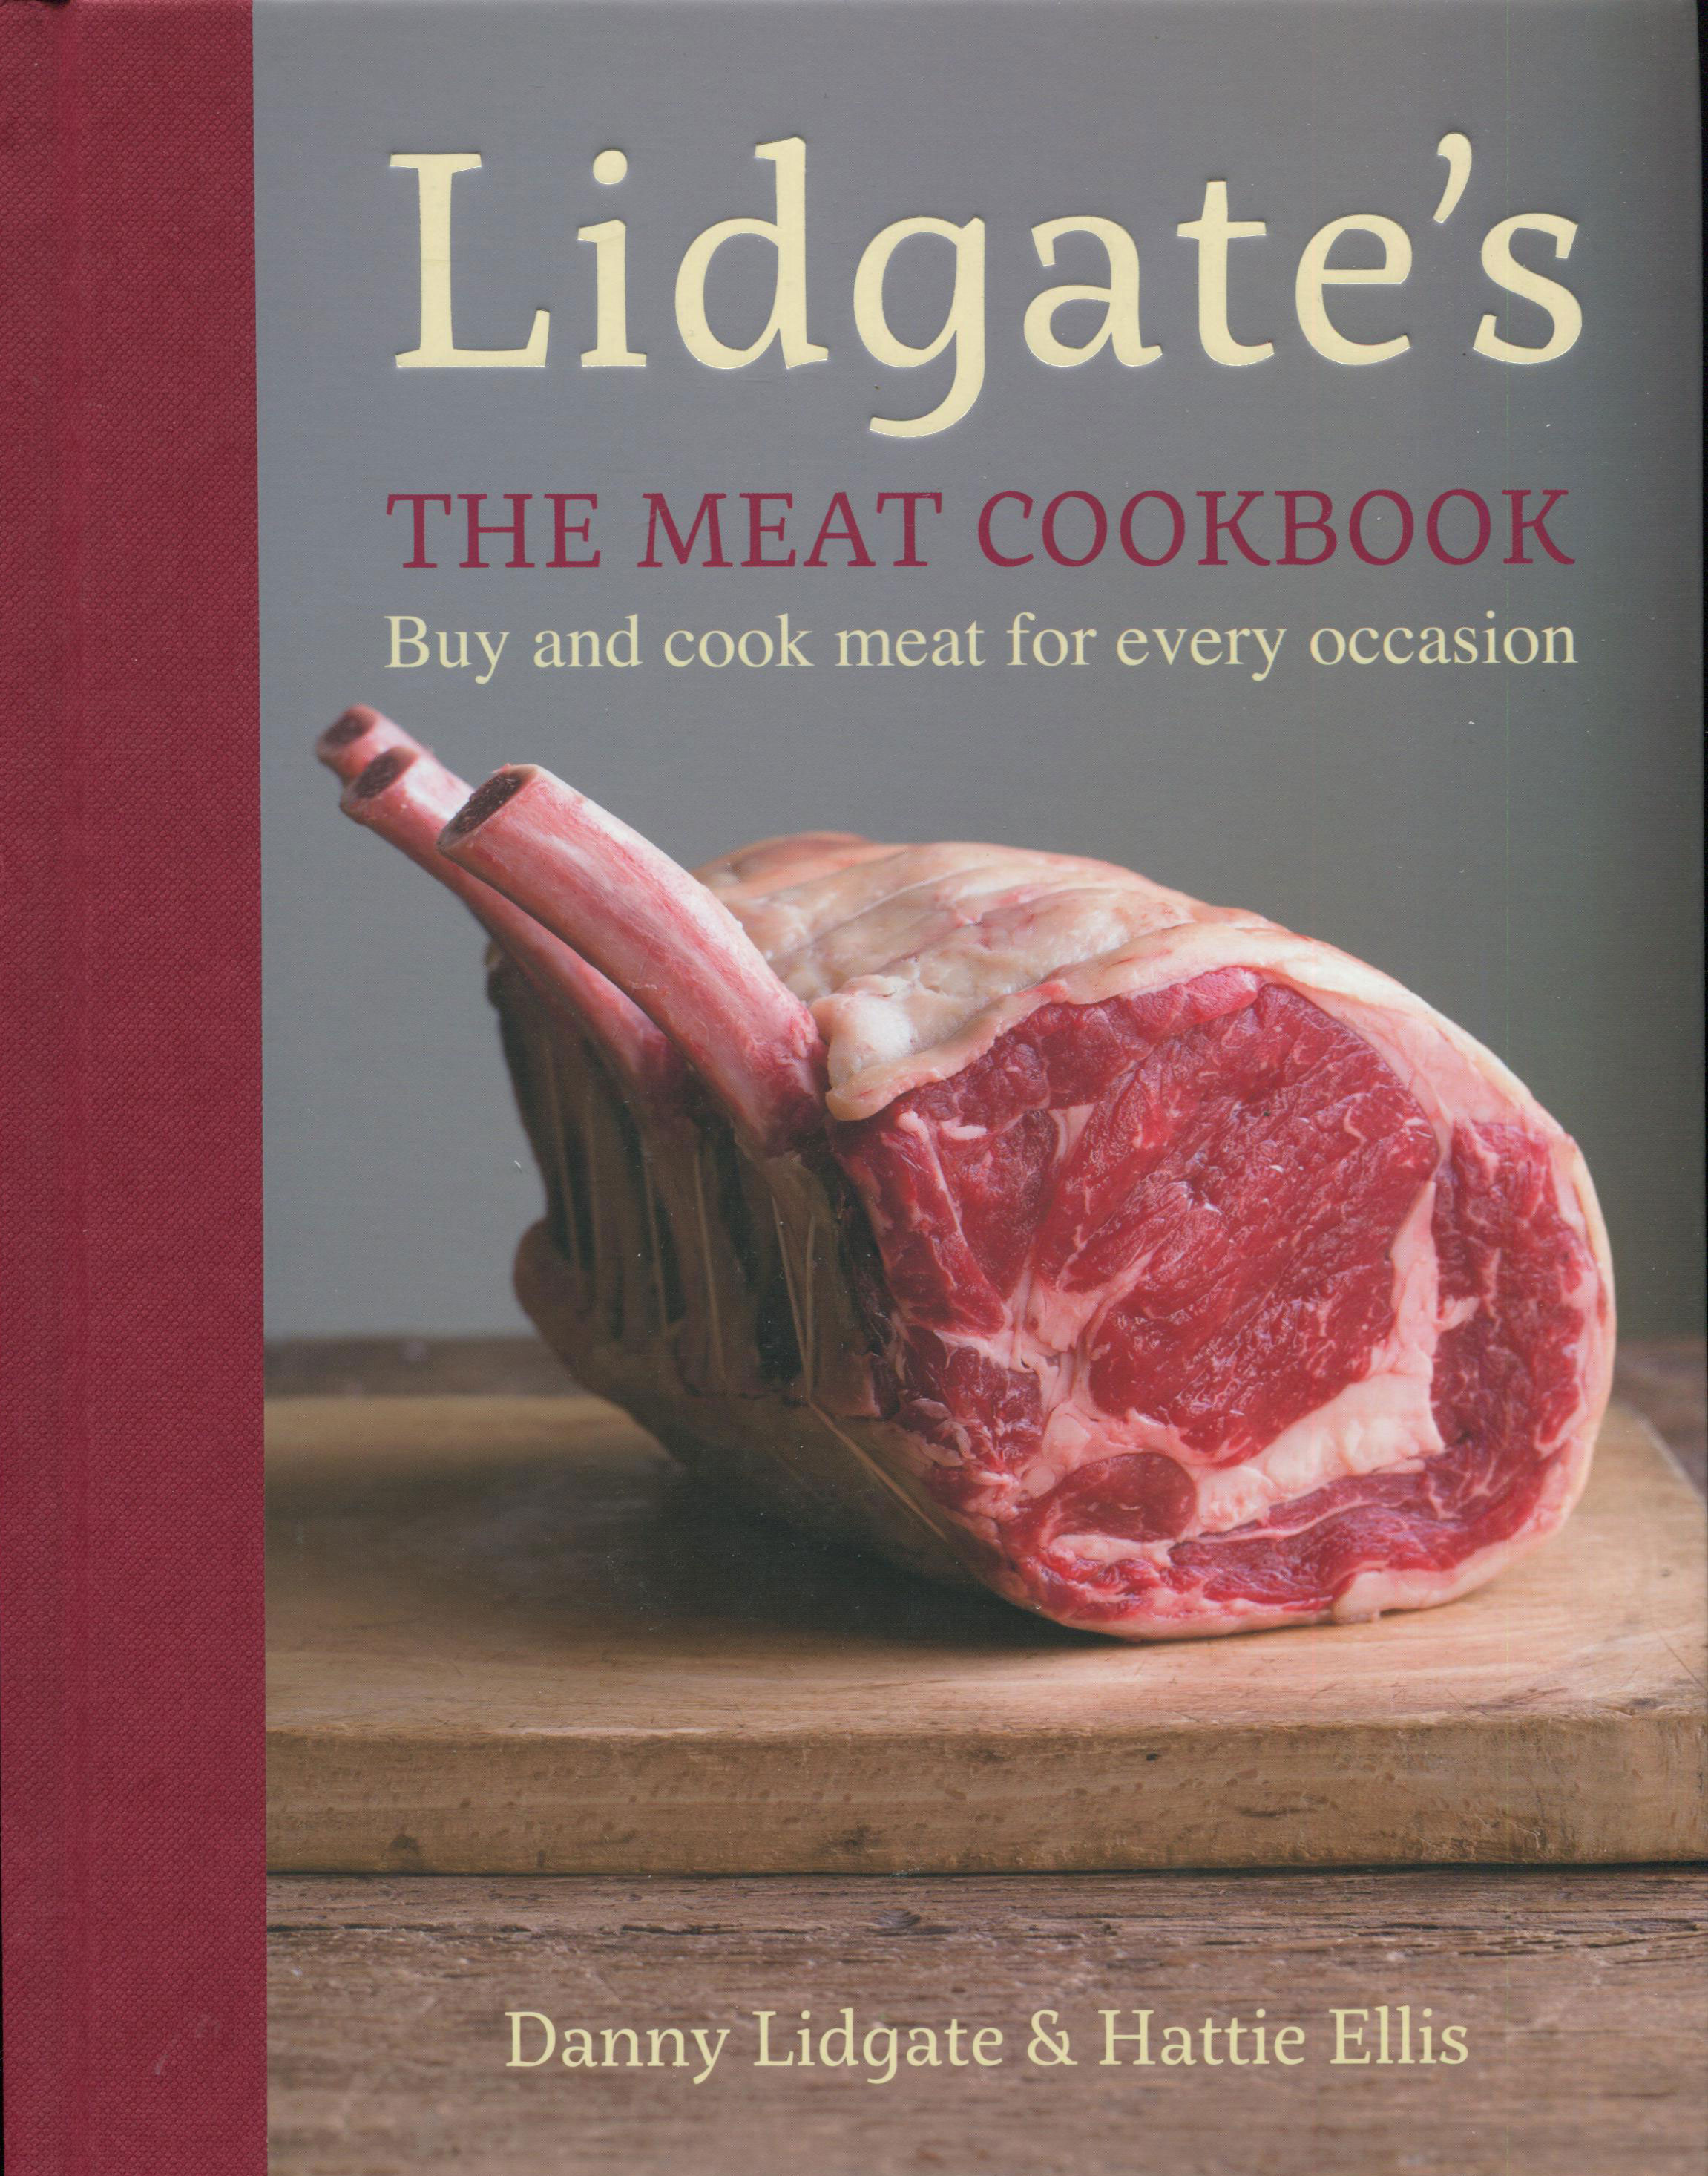 TBT Cookbook Review: Lidgate's, The Meat Cookbook